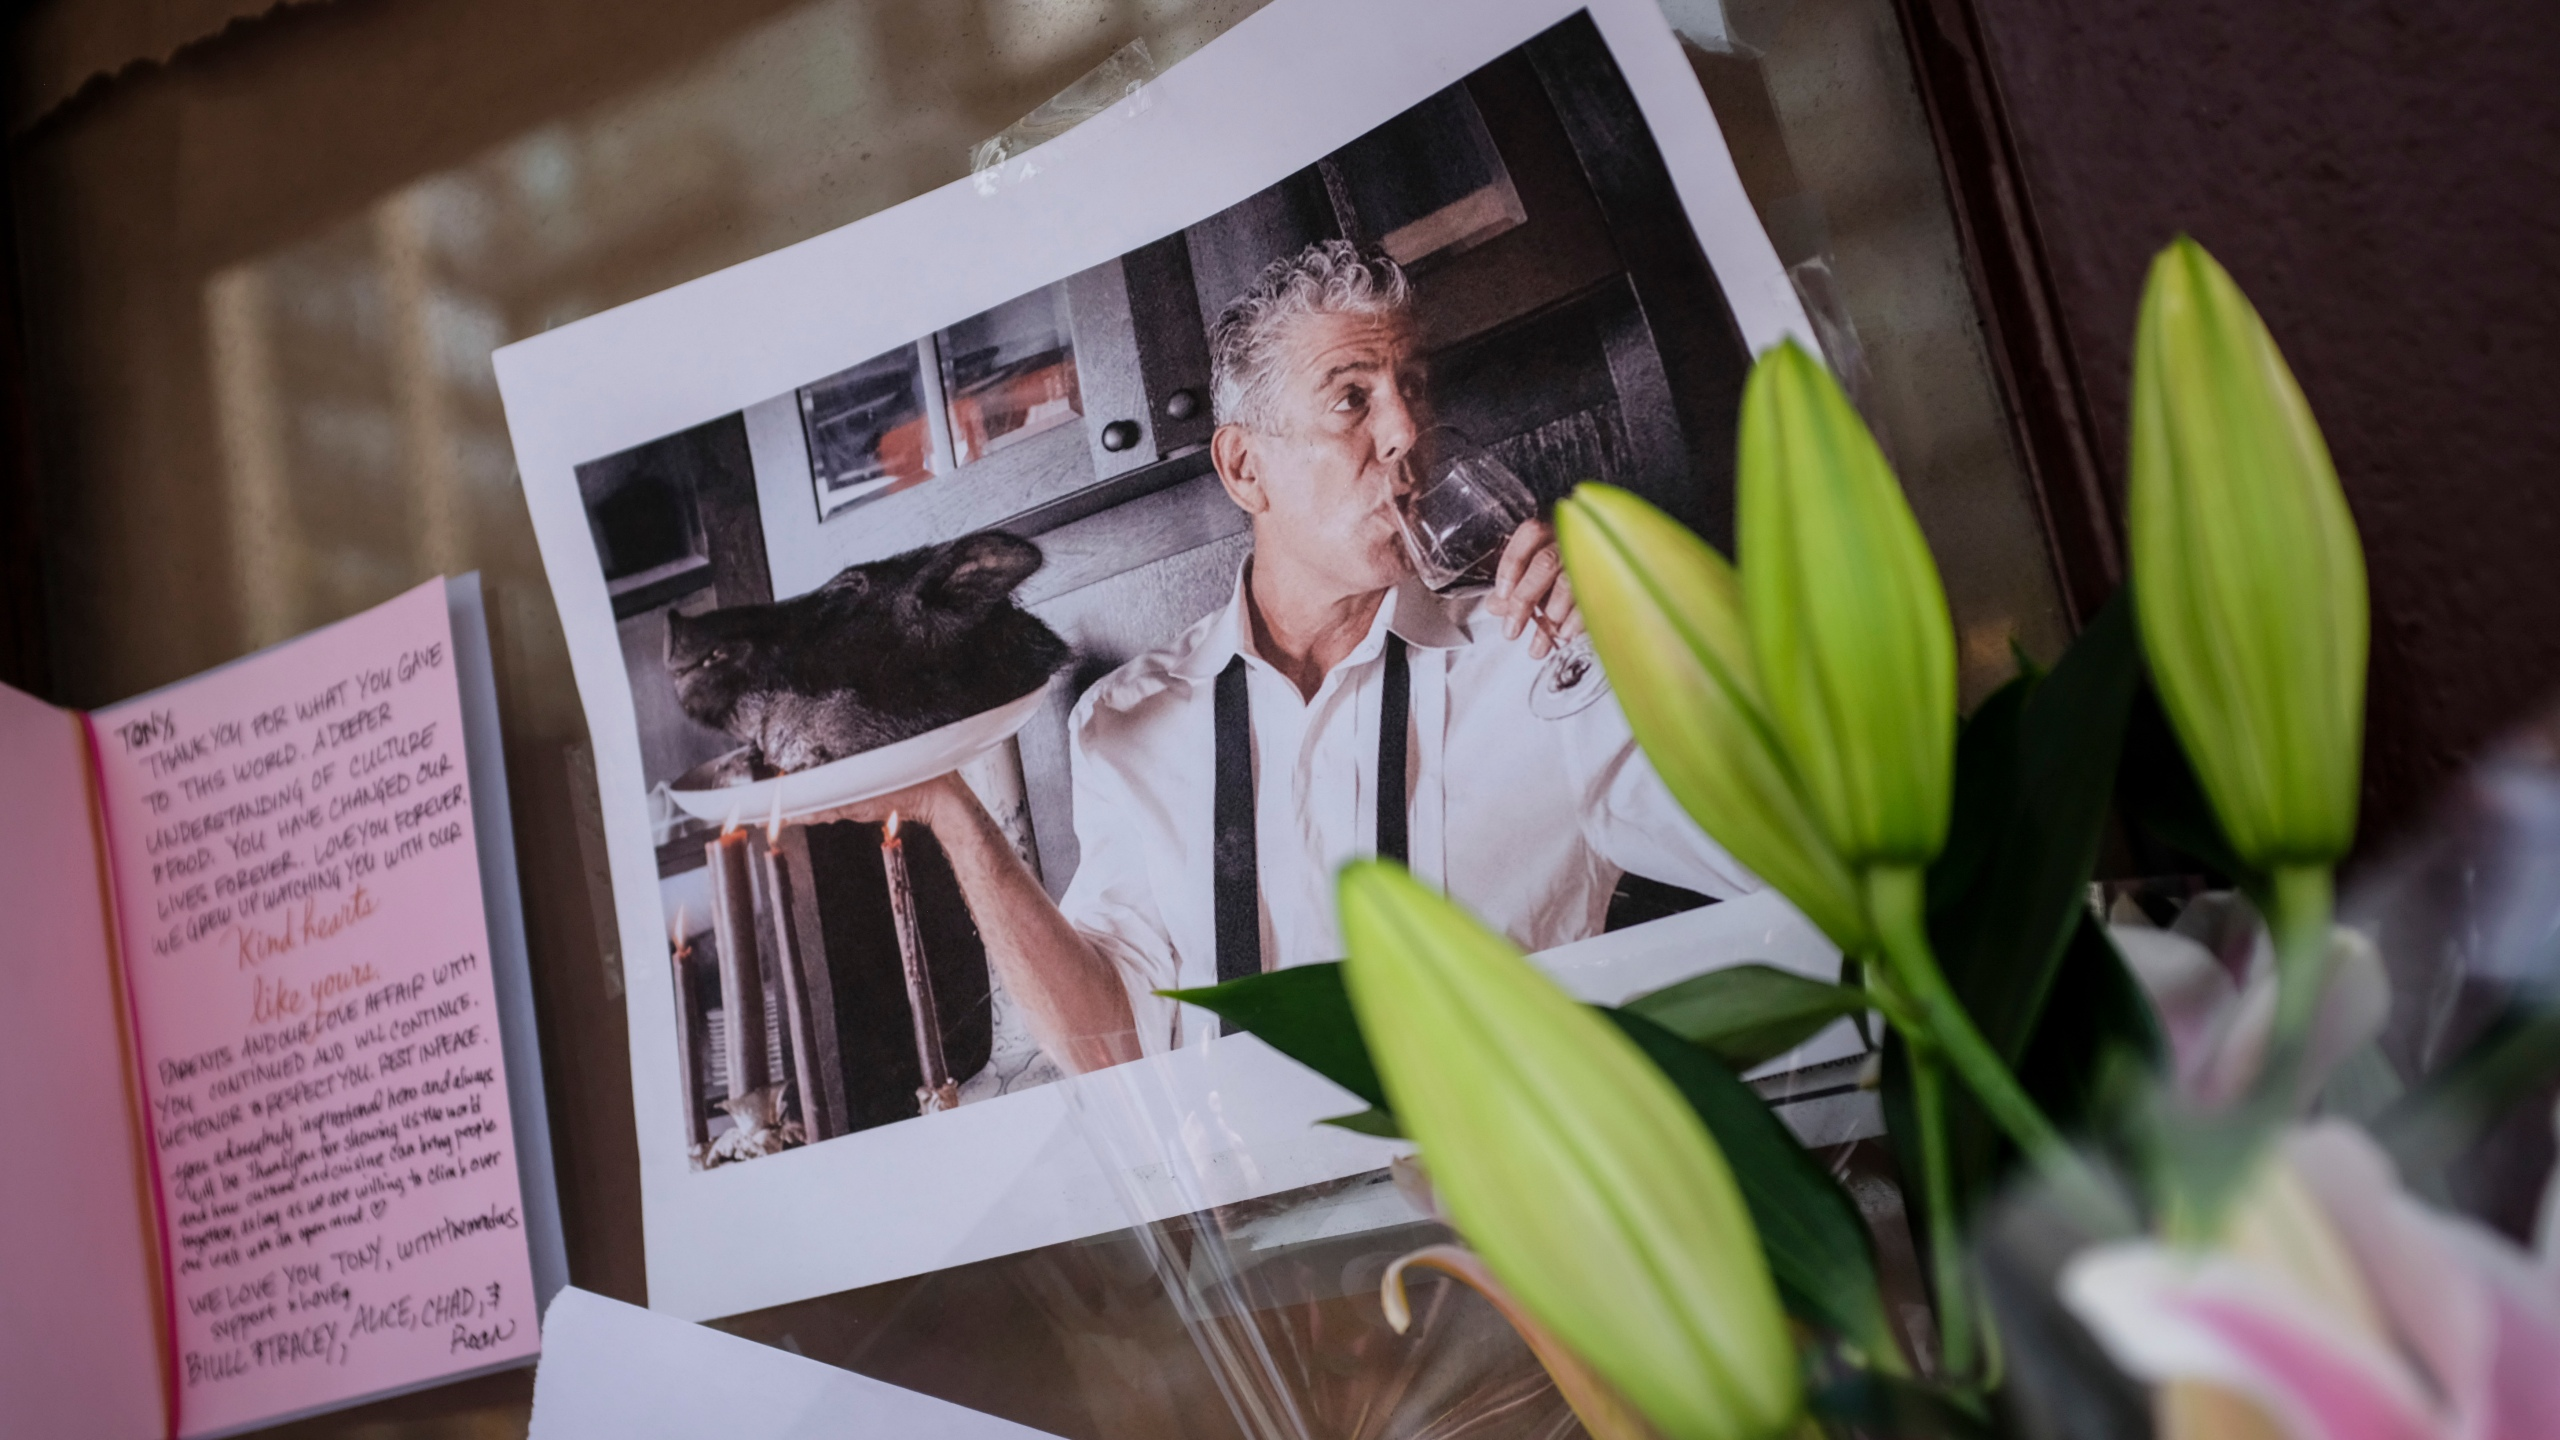 Notes, photographs and flowers are left in memory of Anthony Bourdain at the closed location of Brasserie Les Halles, where Bourdain used to work as the executive chef, June 8, 2018, in New York City. Bourdain, a writer, chef and television personality, was found dead in his hotel room in France earlier in the day.(Credit: Drew Angerer/Getty Images)